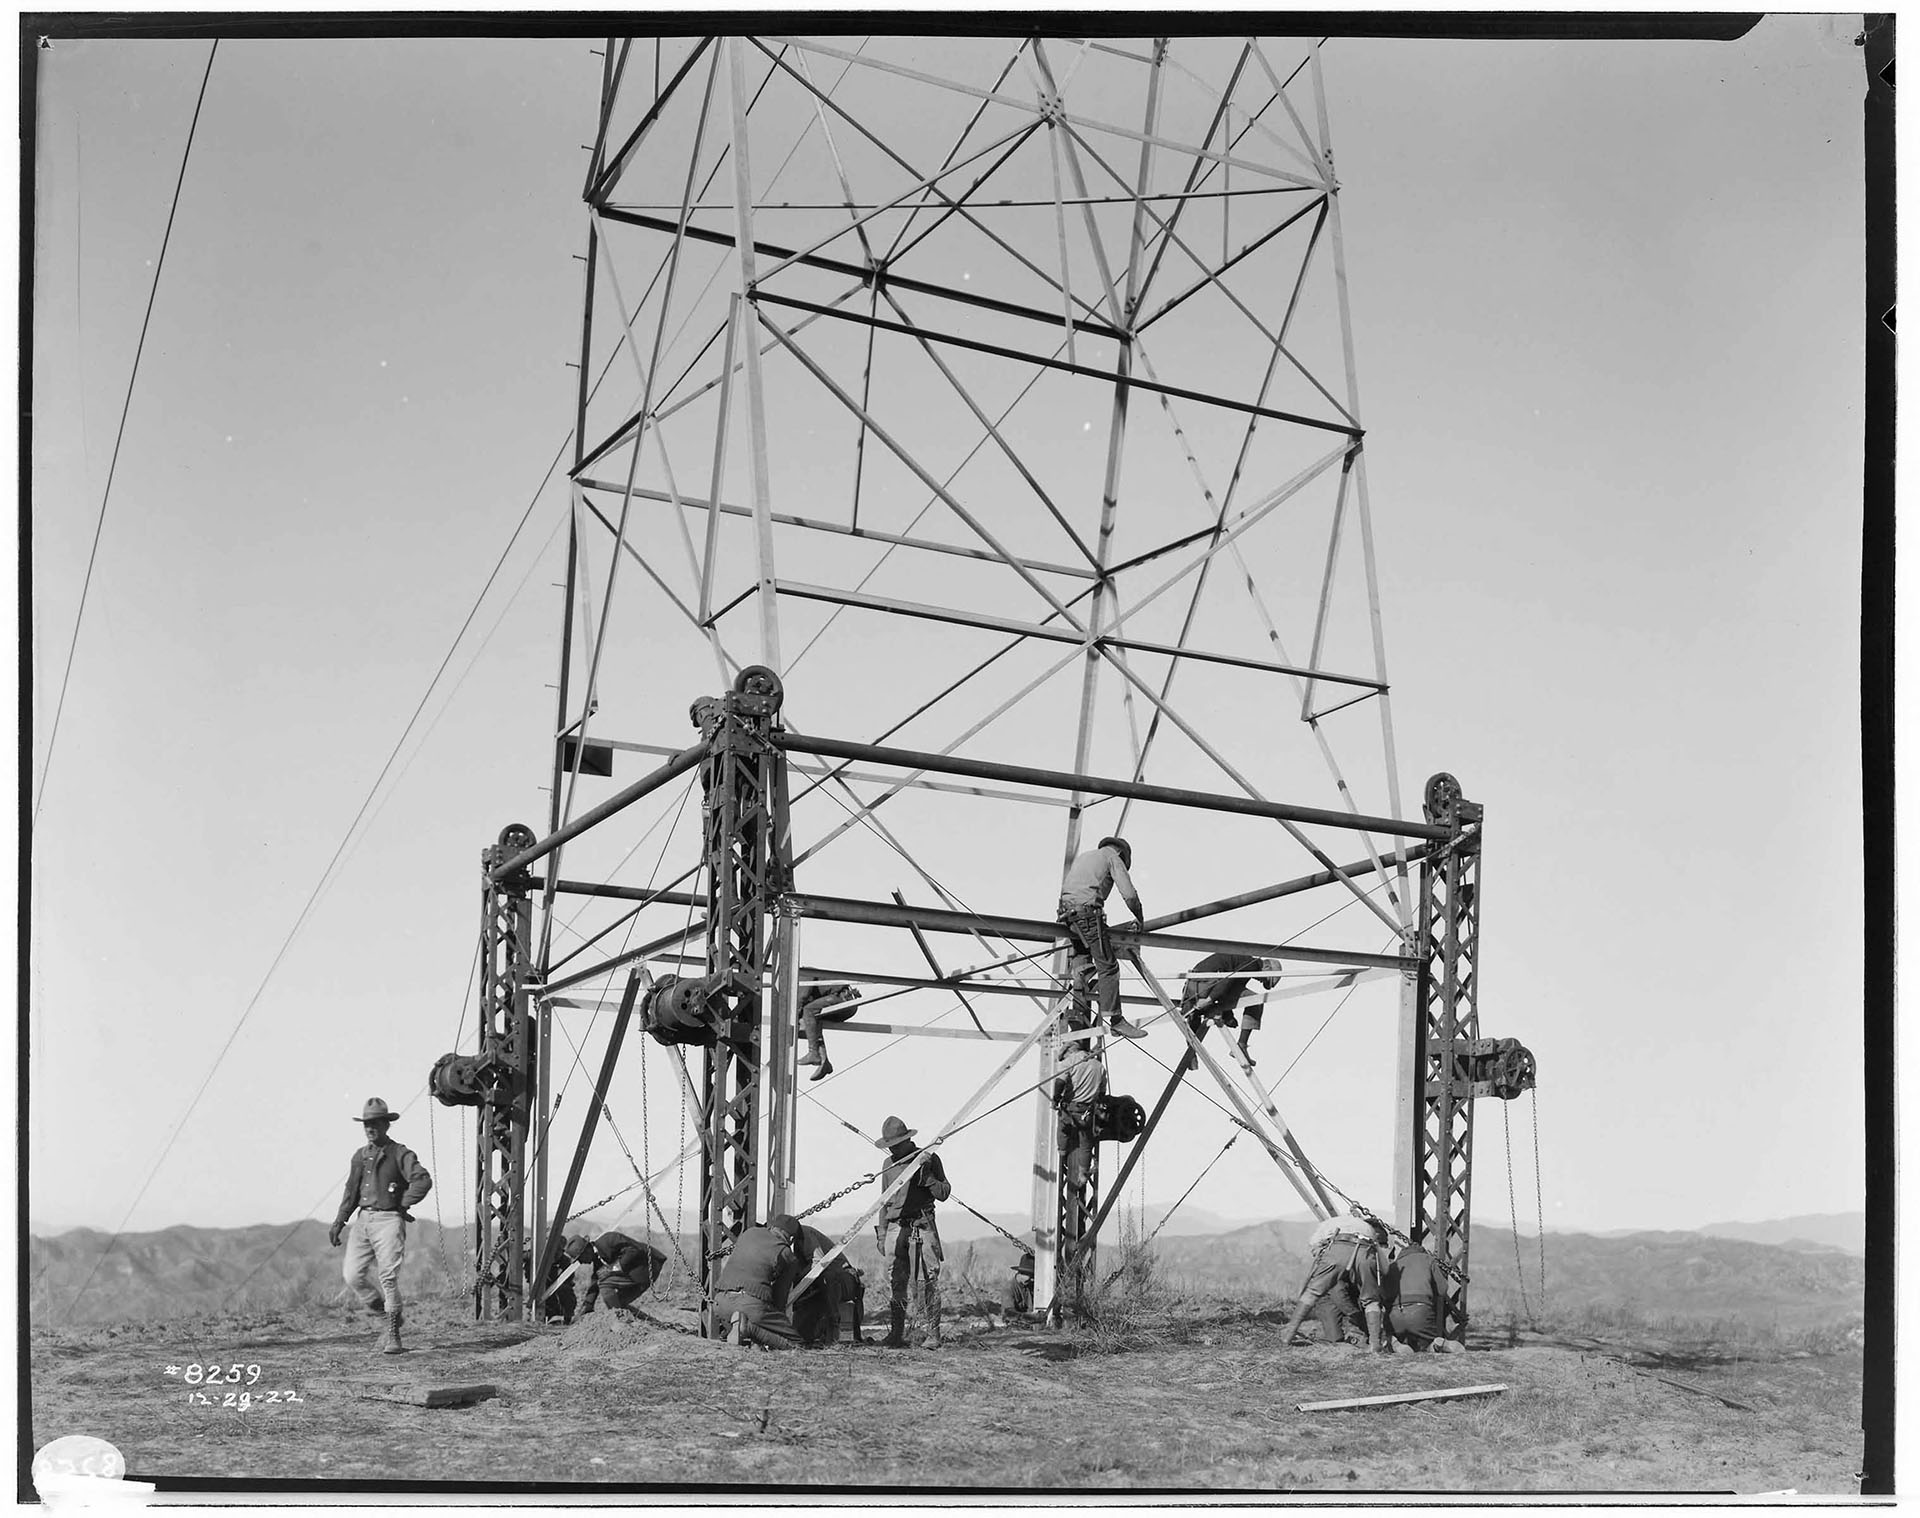 Big Creek Transmission Line - Raising Towers for 220kV transmission. SCE_02_08259. 	Southern California Edison Photographs and Negatives. The Huntington Library, San Marino, California